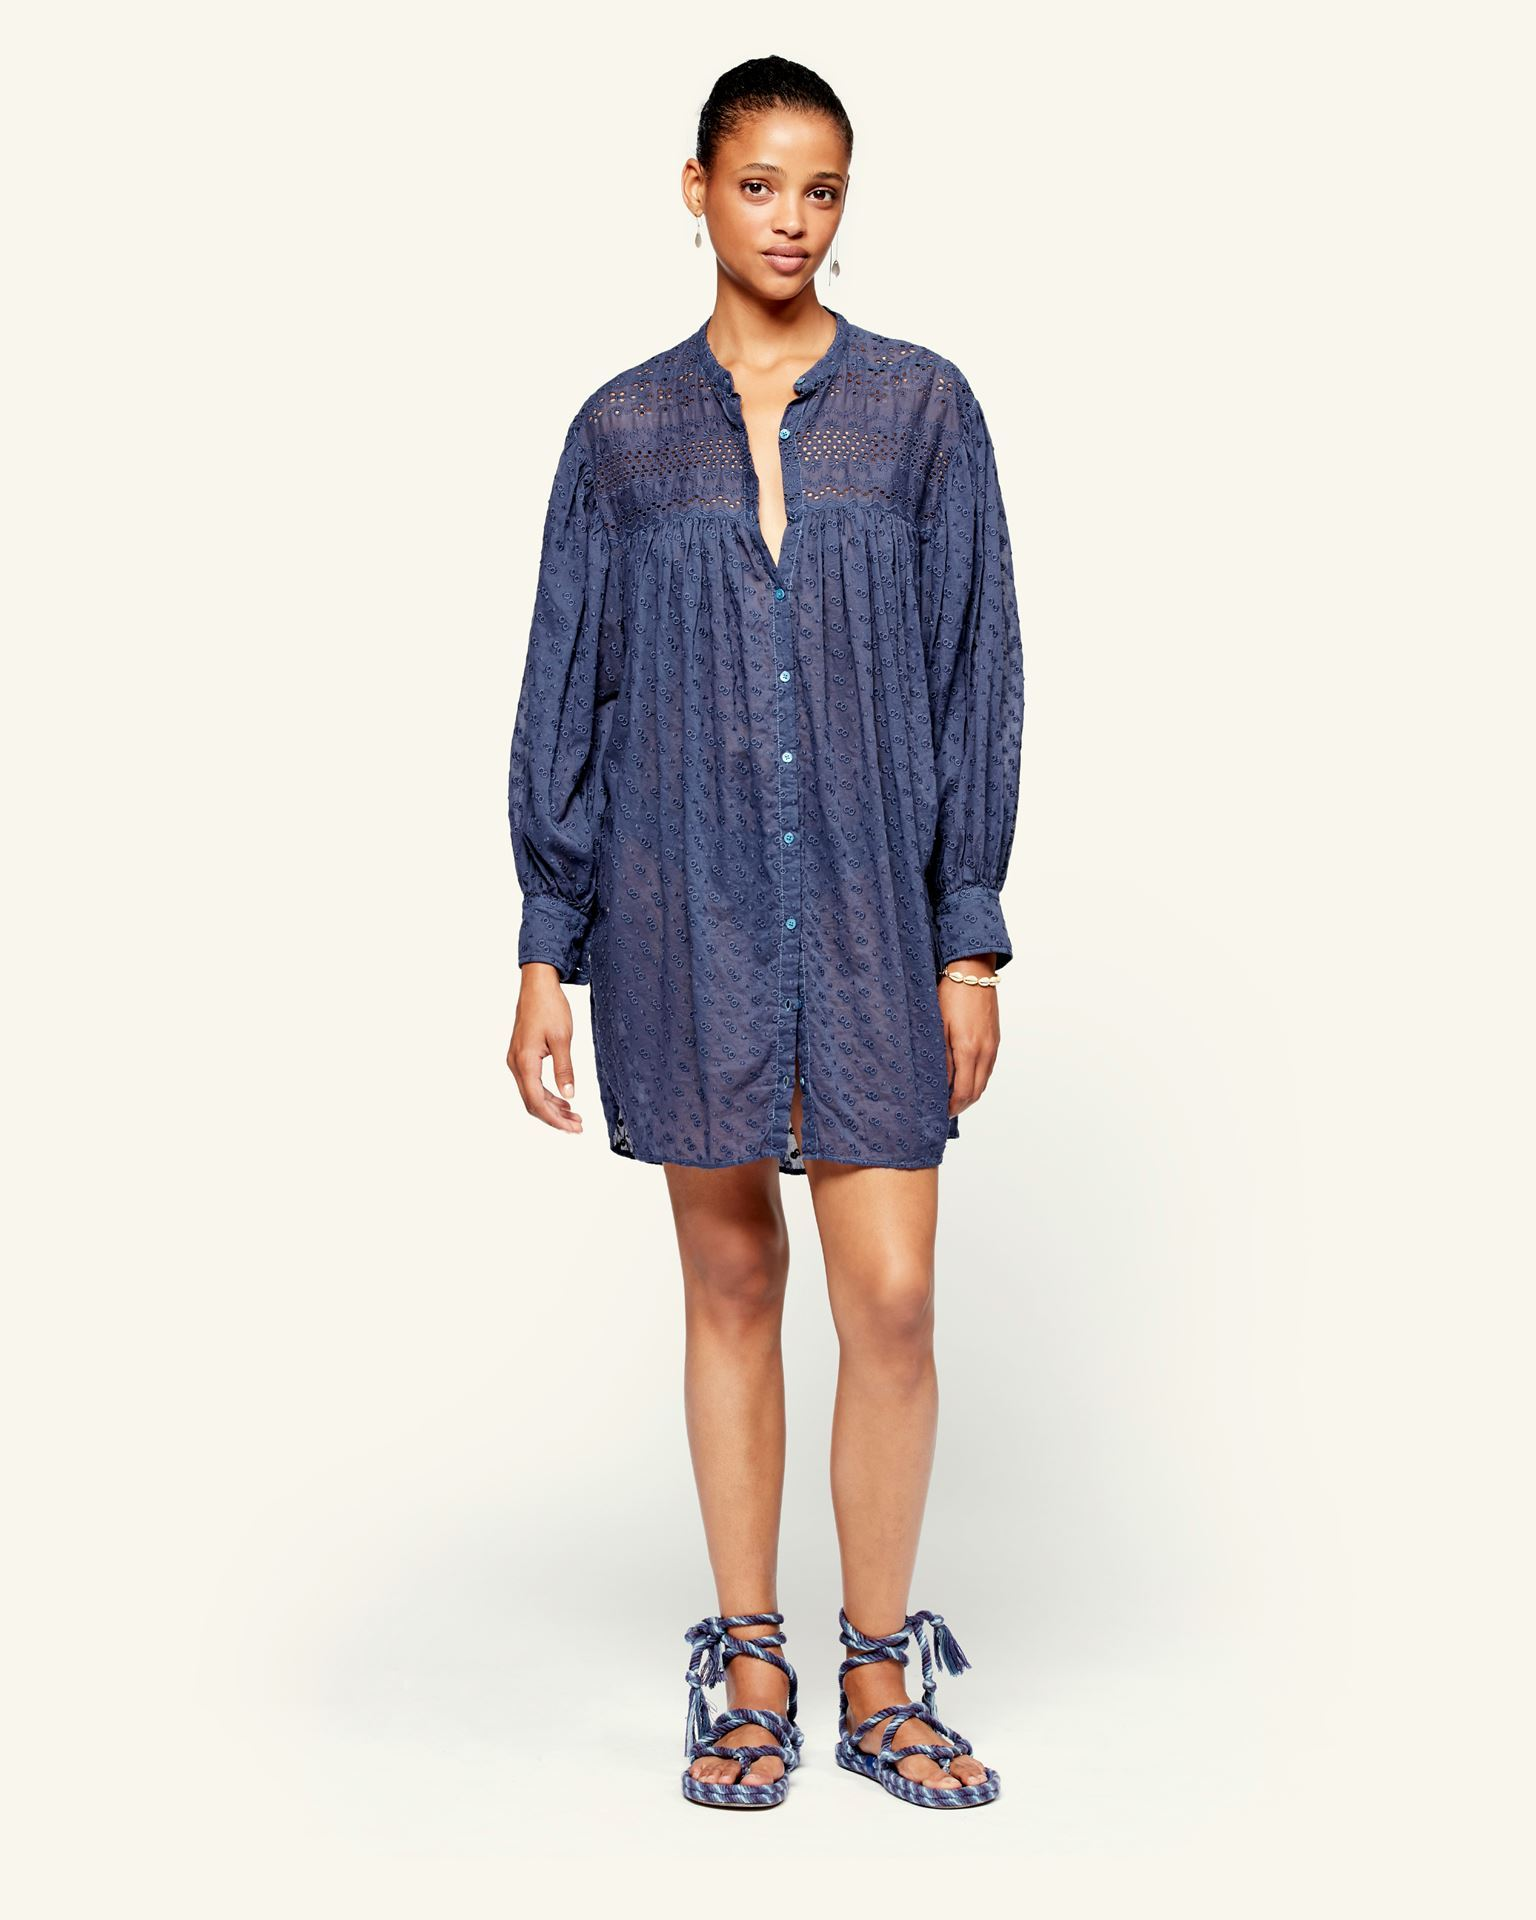 Isabel Marant Womens Dress Isabel Marant Etoile | Tilalia Dress - Faded Night